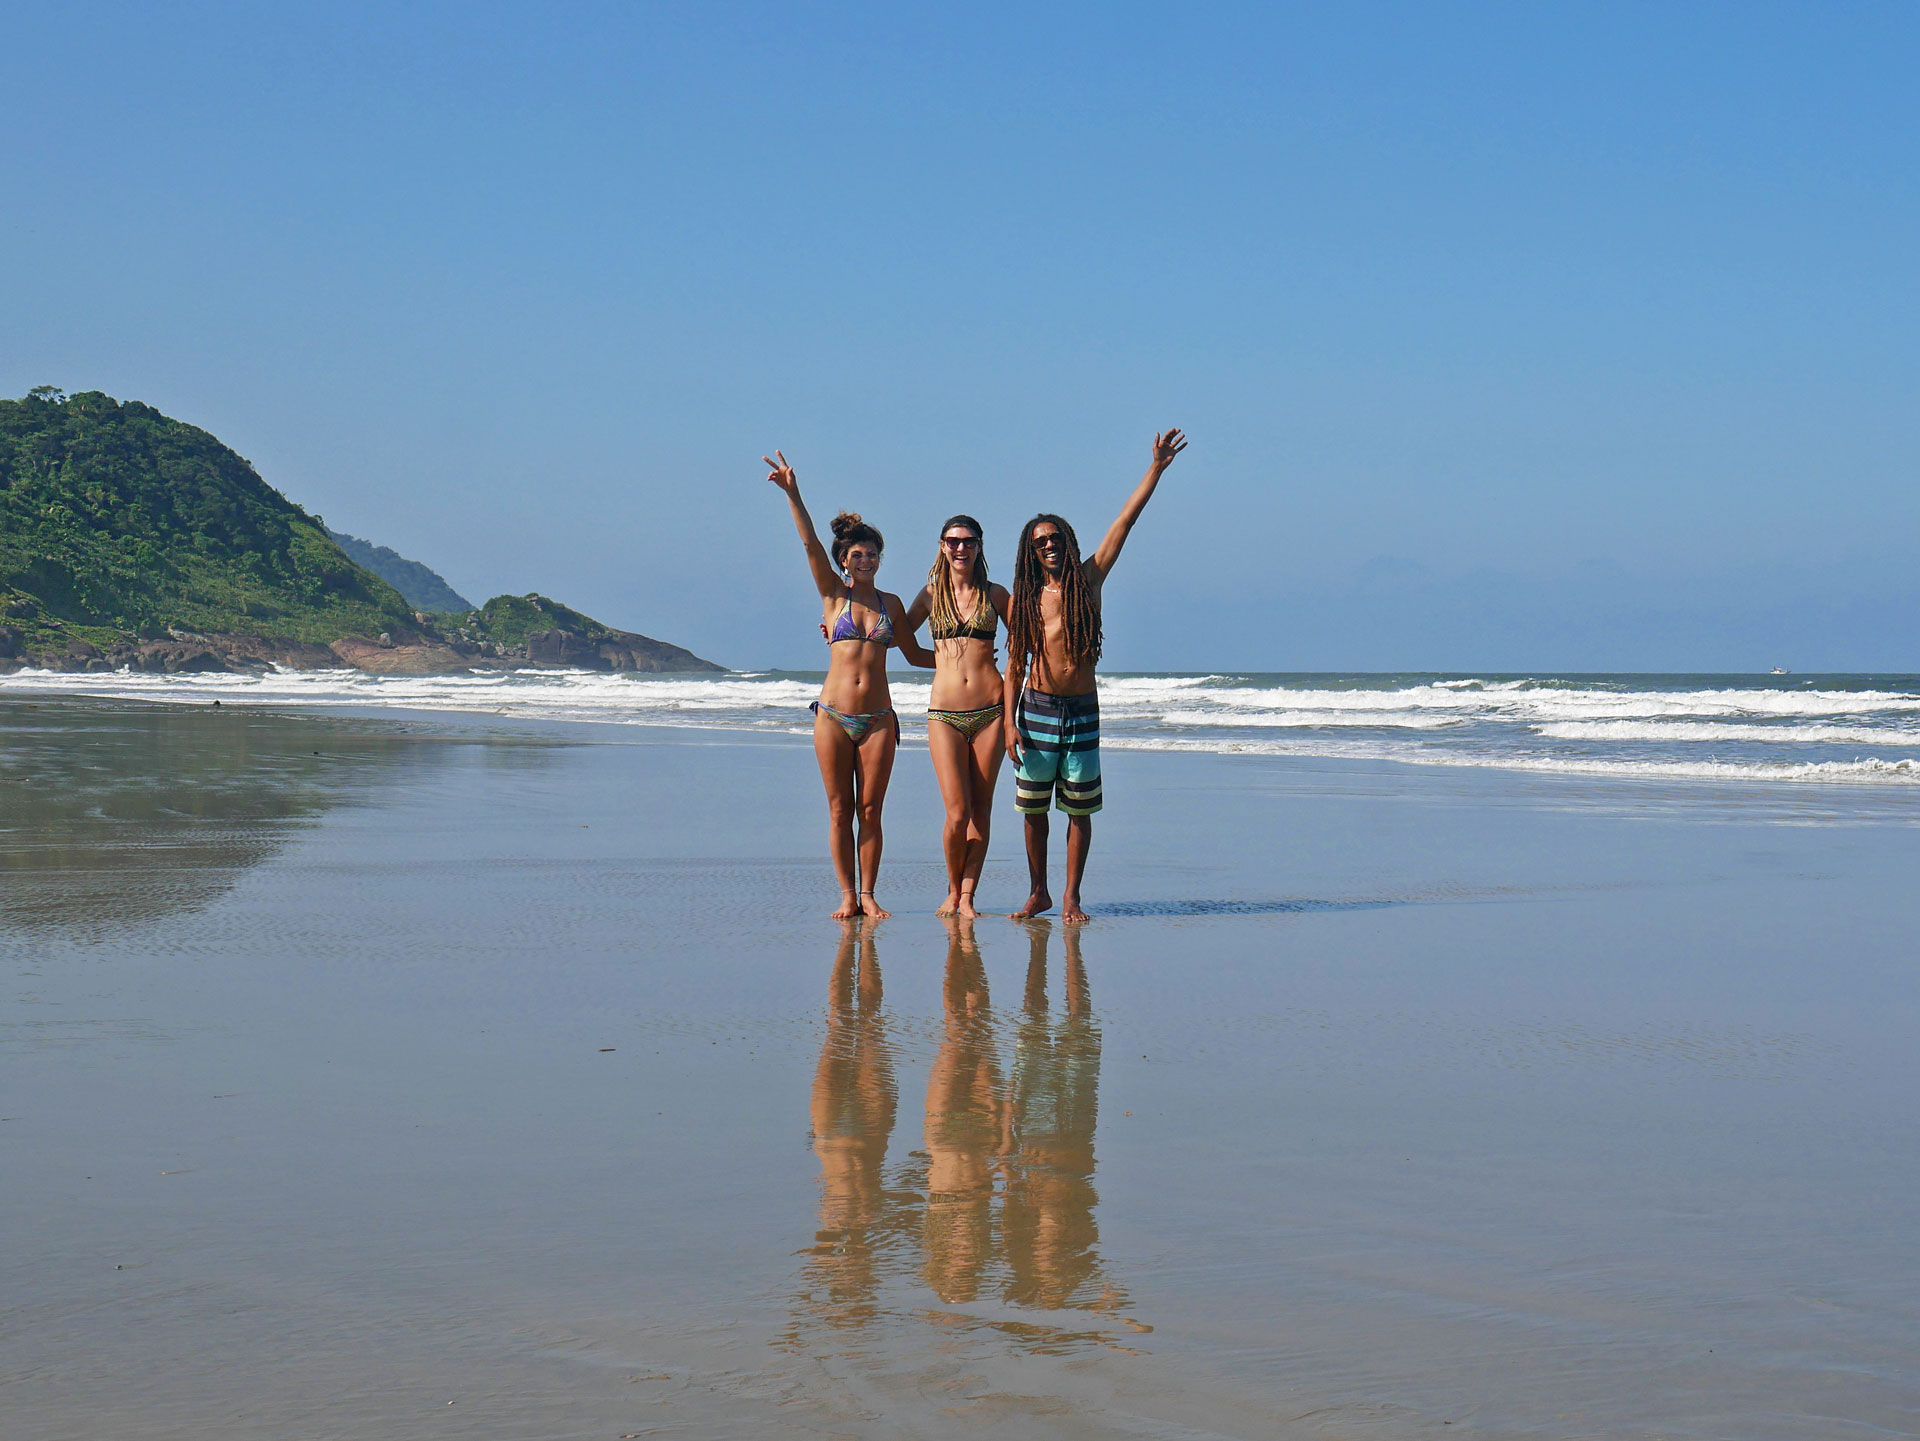 Rasta couple with friend at beach in Barra do Una, Brazil